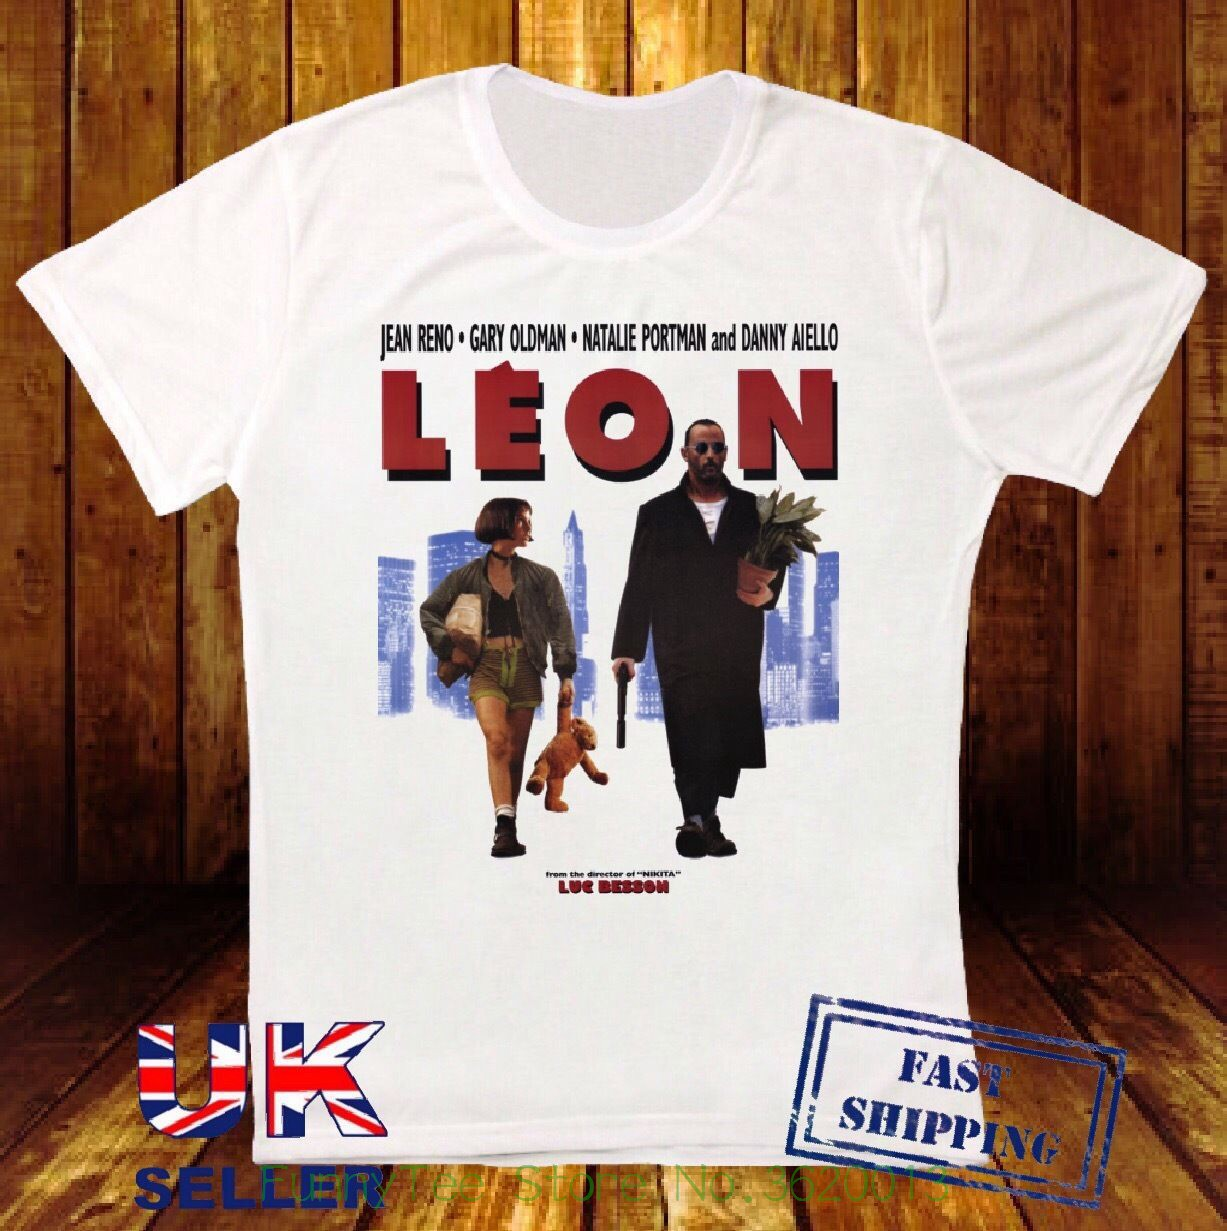 Leon The Professional Poster Jean Reno Retro Vintage Hipster Unisex T Shirt 771